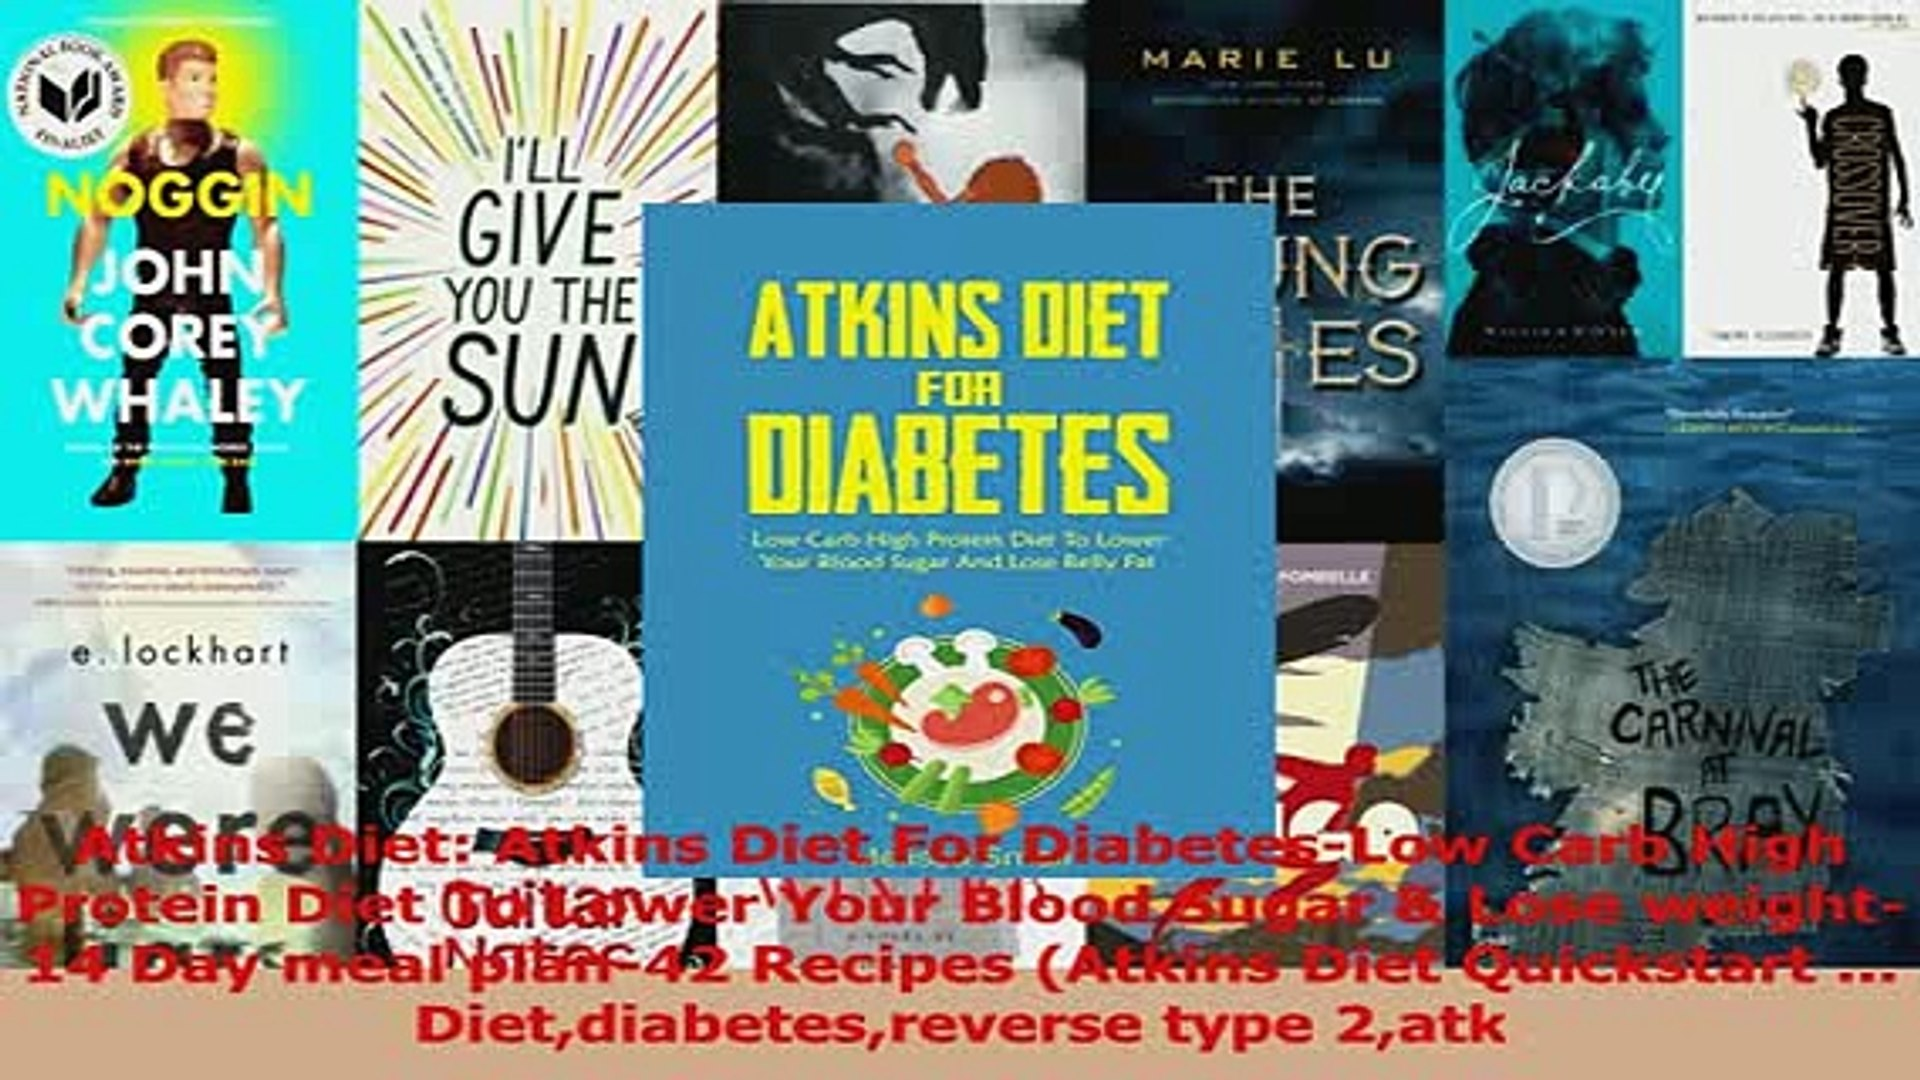 Download Atkins Diet Atkins Diet For Diabeteslow Carb High Protein Diet To Lower Your Blood Sugar Pdf Online Video Dailymotion